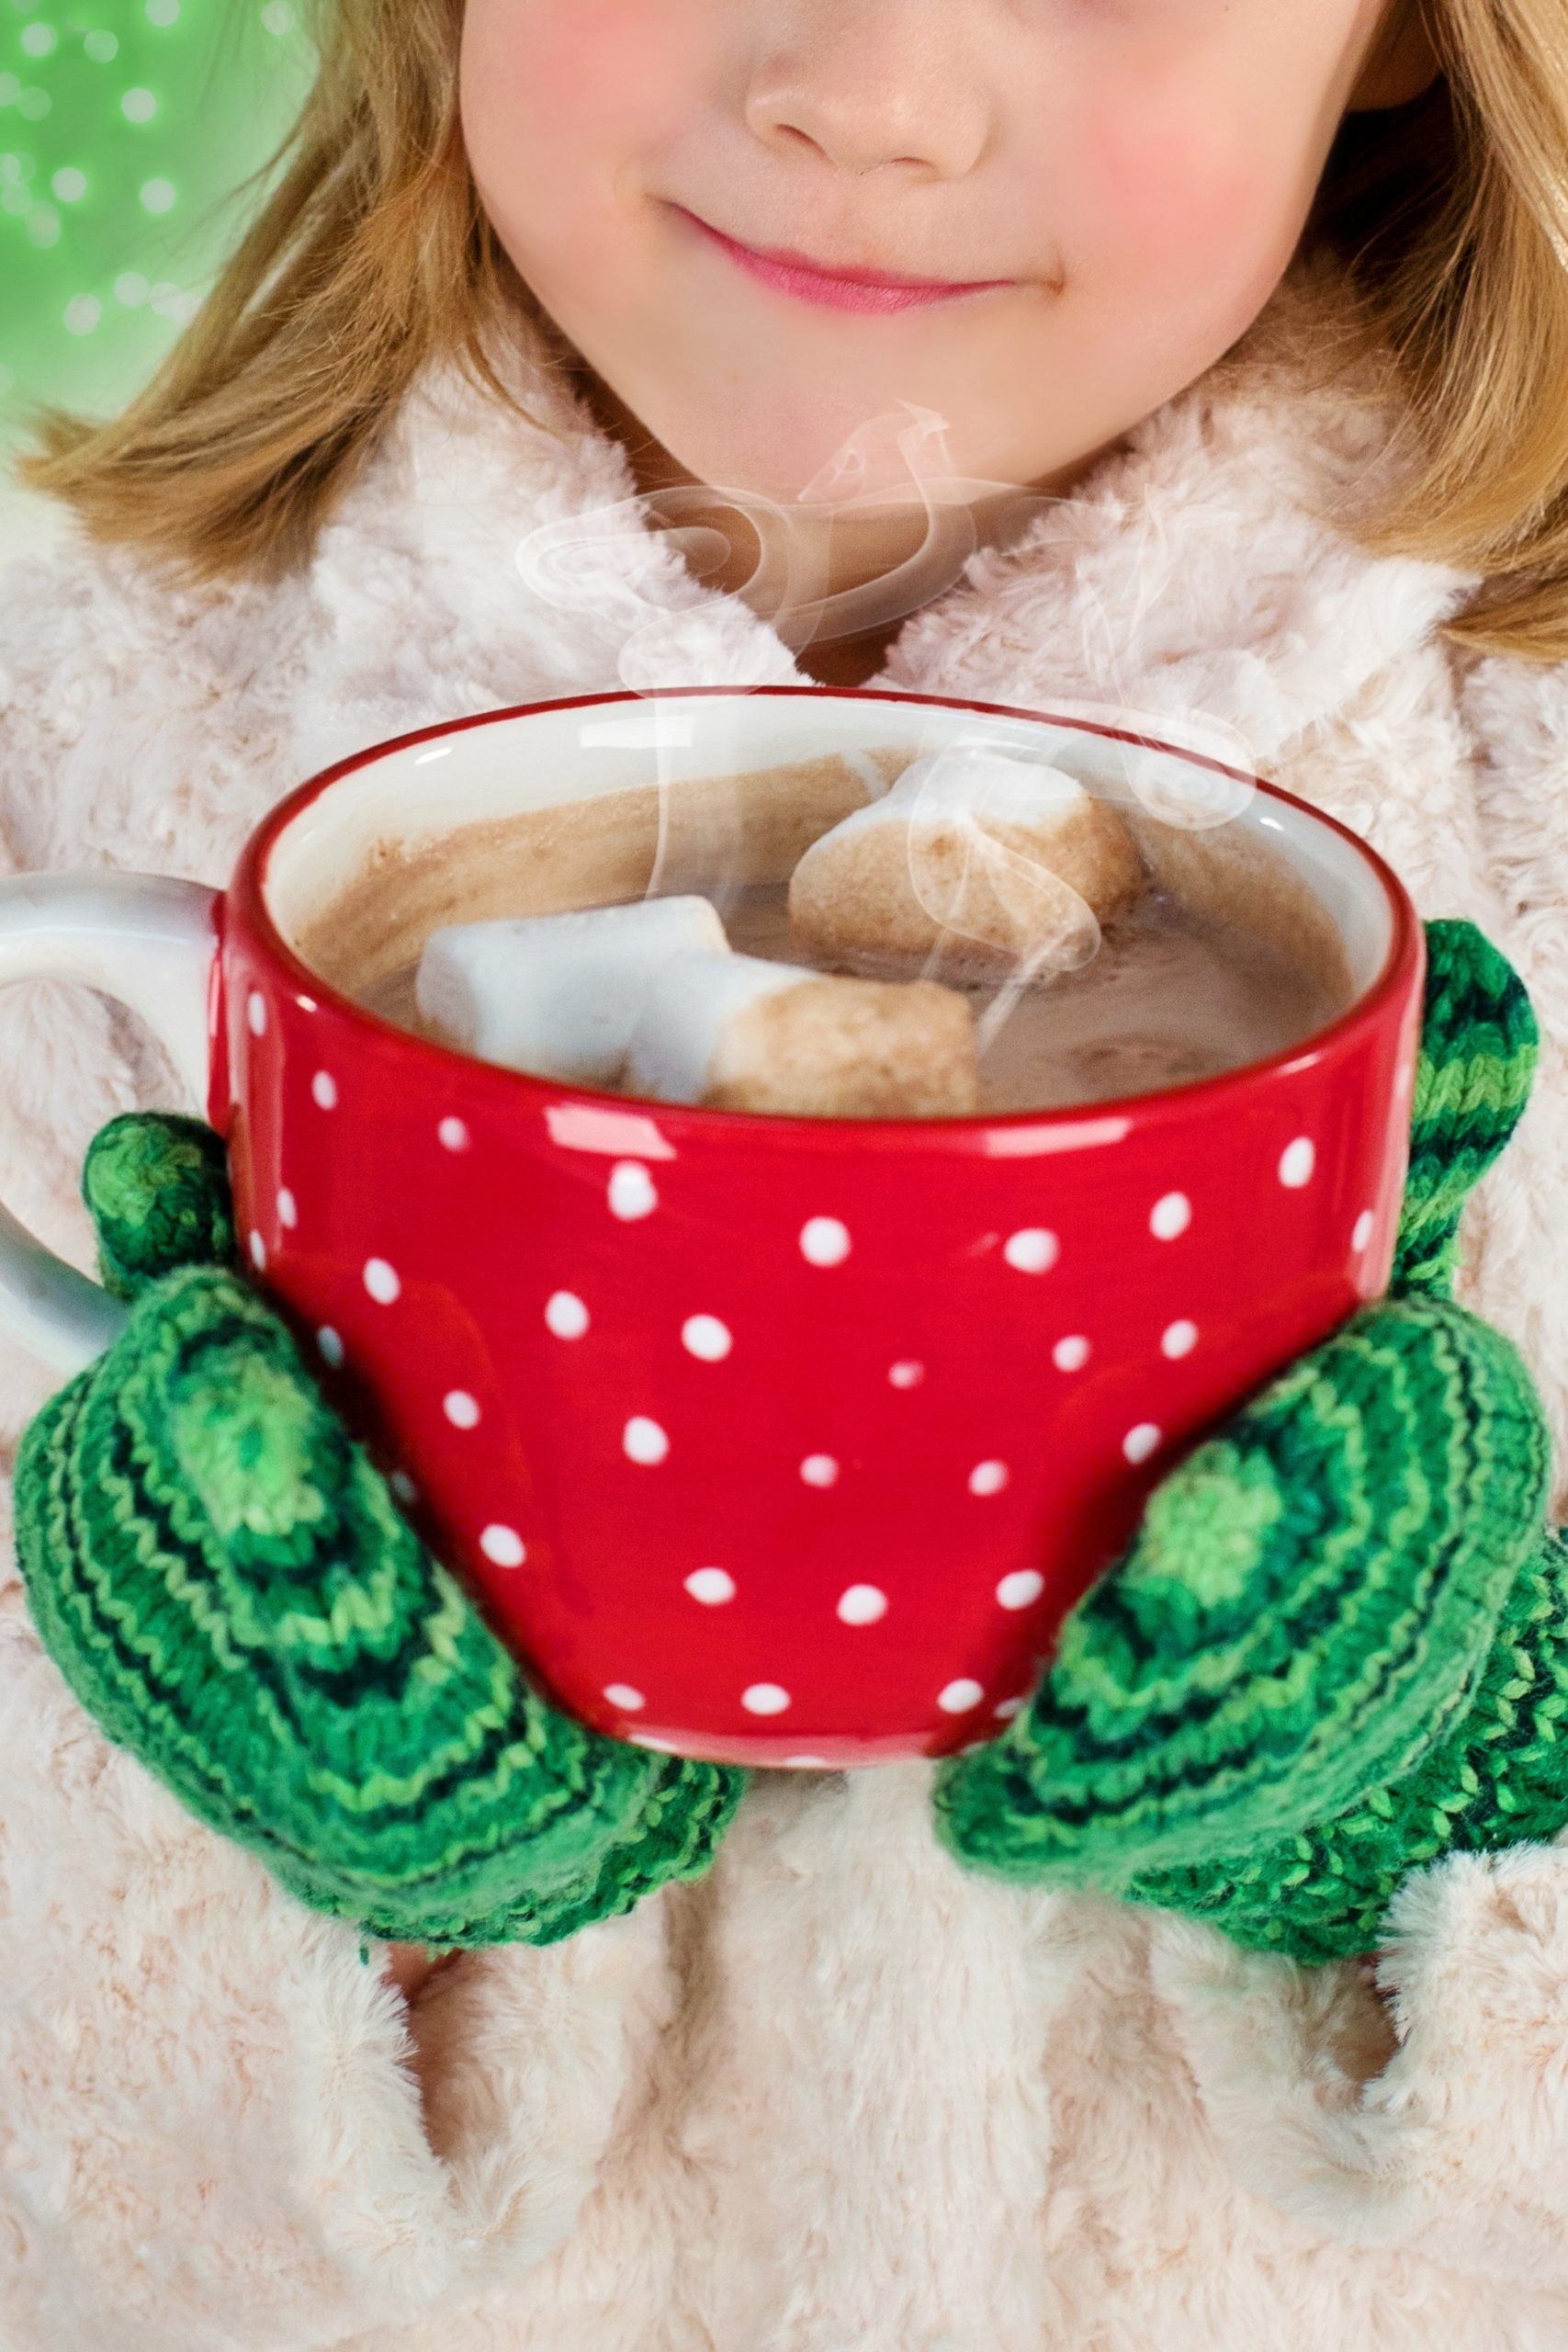 A cup of hot chocolate warms up every toddler and their family in the winter. Carry a thermos for a treat. Photo: Pixabay